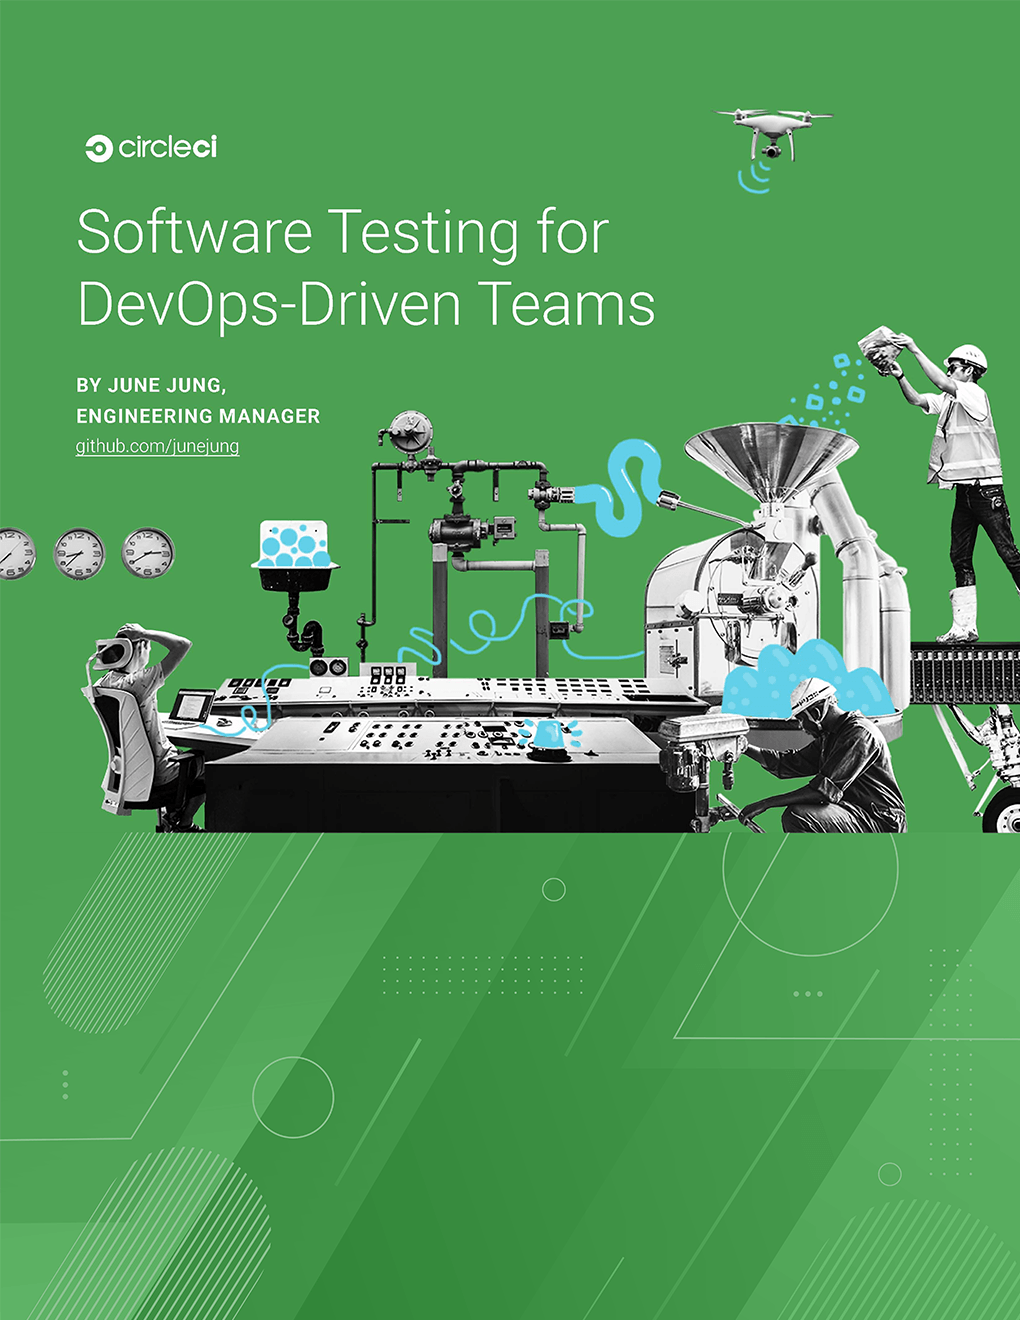 Software Testing for DevOps-Driven Teams